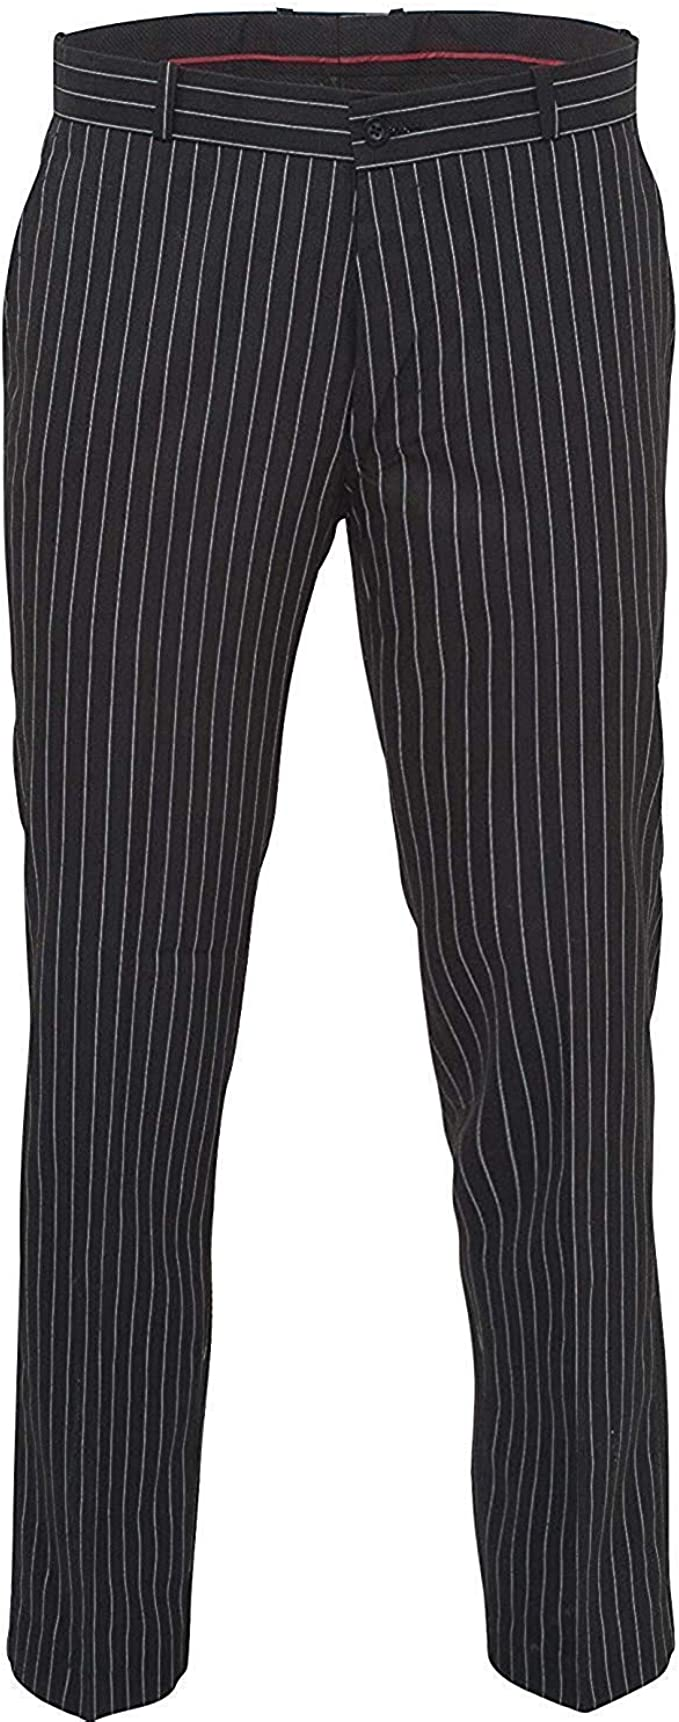 60s Fancy Dress and Quality Clothing 1960s UK Relco Mens Stay Press Classic Pinstripe Trousers Sta Press Retro Mod Skin Ska £39.99 AT vintagedancer.com